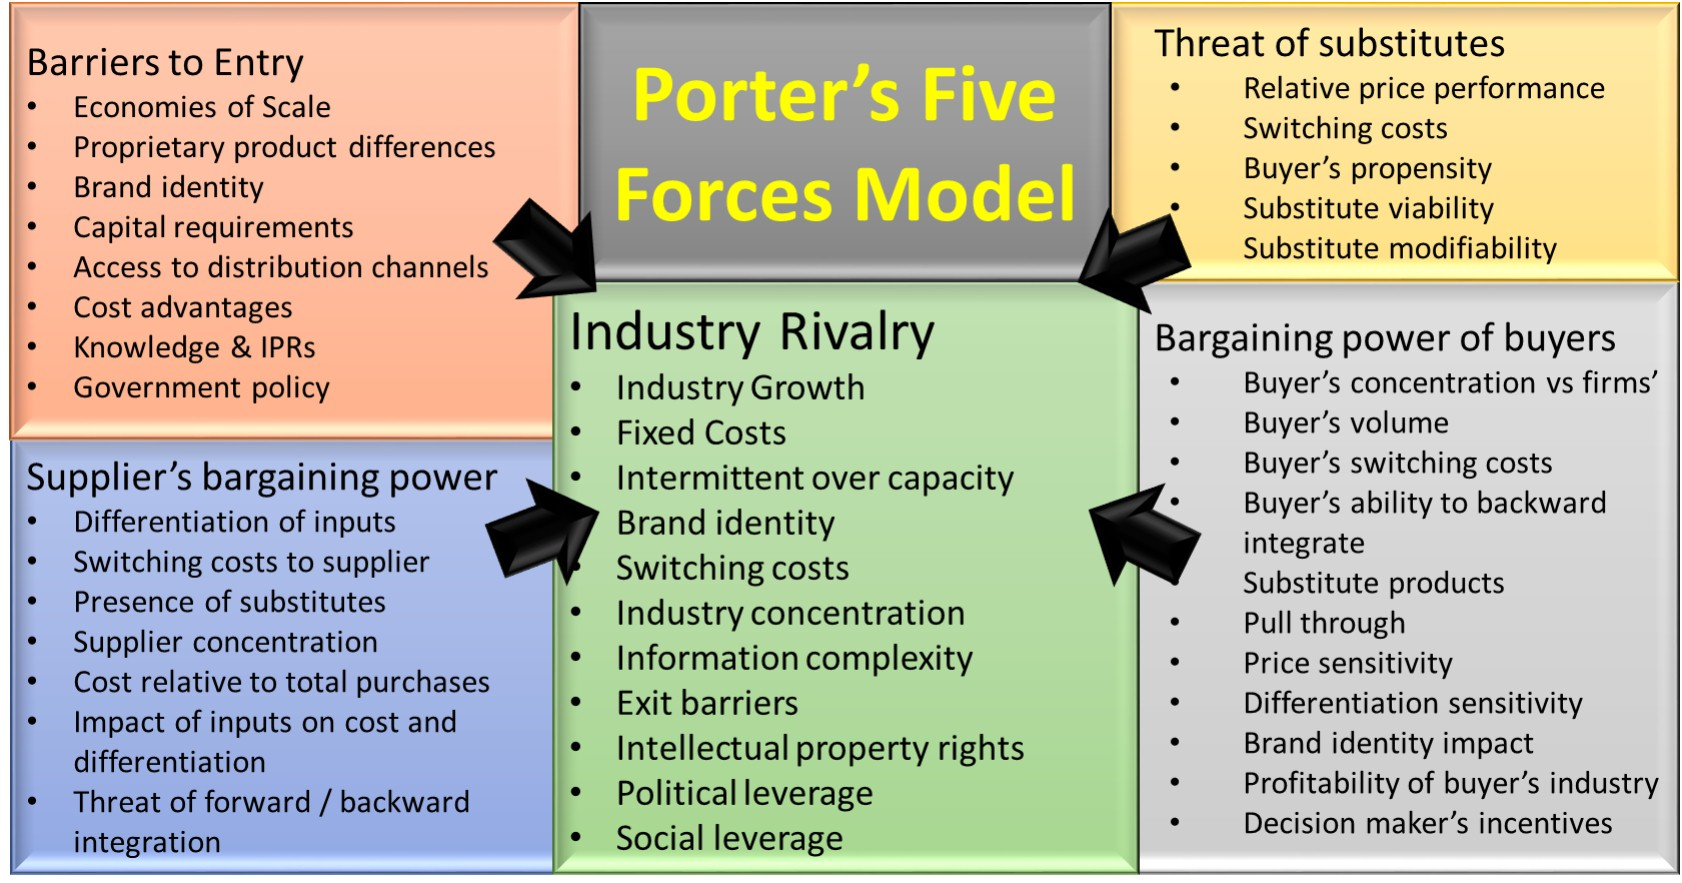 Le Meilleur Fastfood Industry Using Five Forces Of Michael Porter Ce Mois Ci